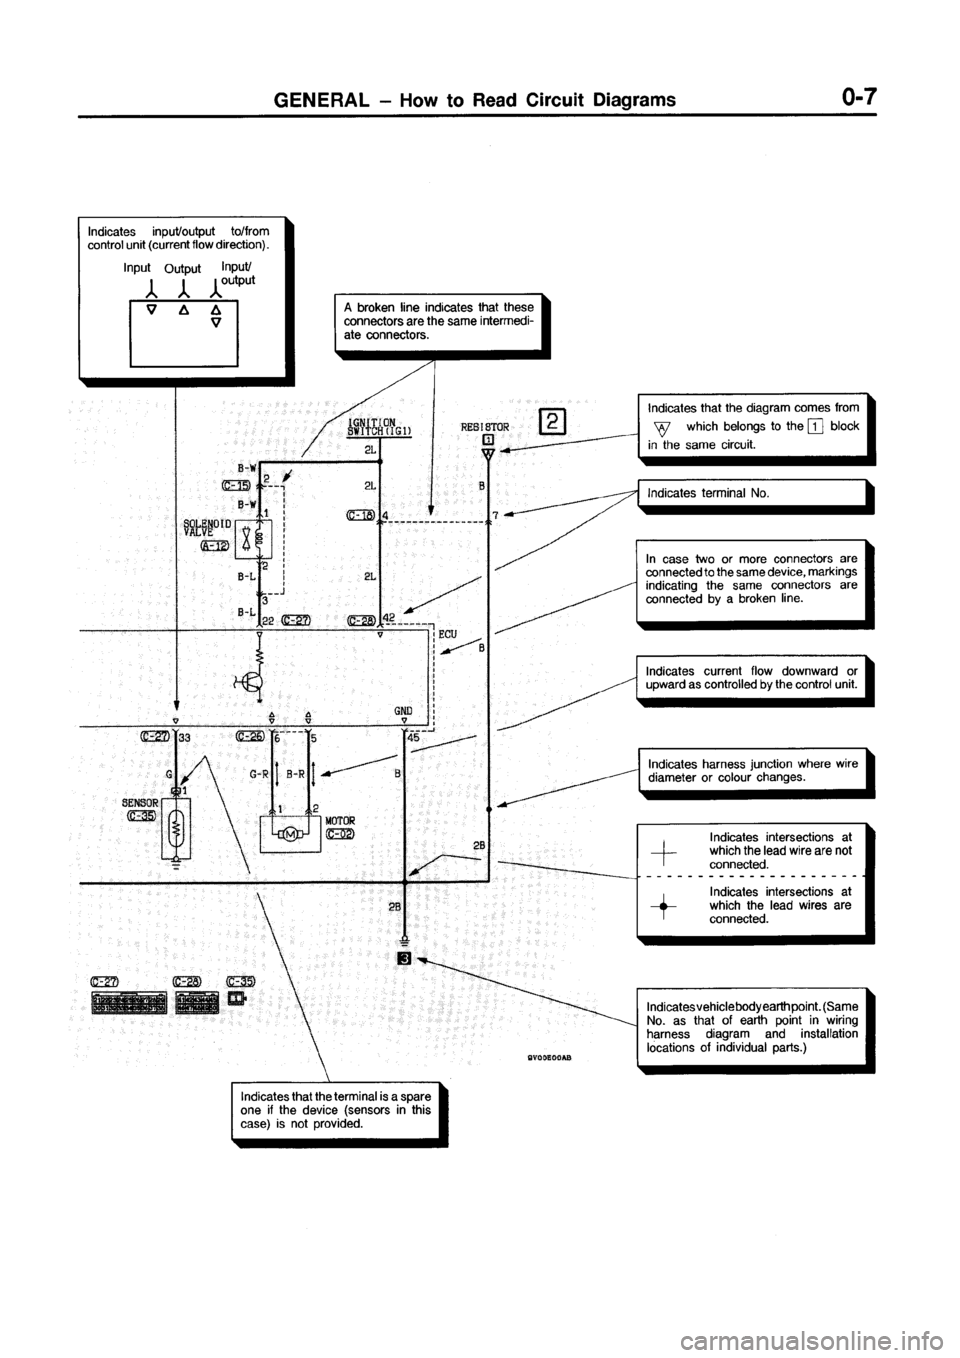 Kia Sportage Central Locking Wiring Diagram : Kia sportage tow bar wiring diagram imageresizertool